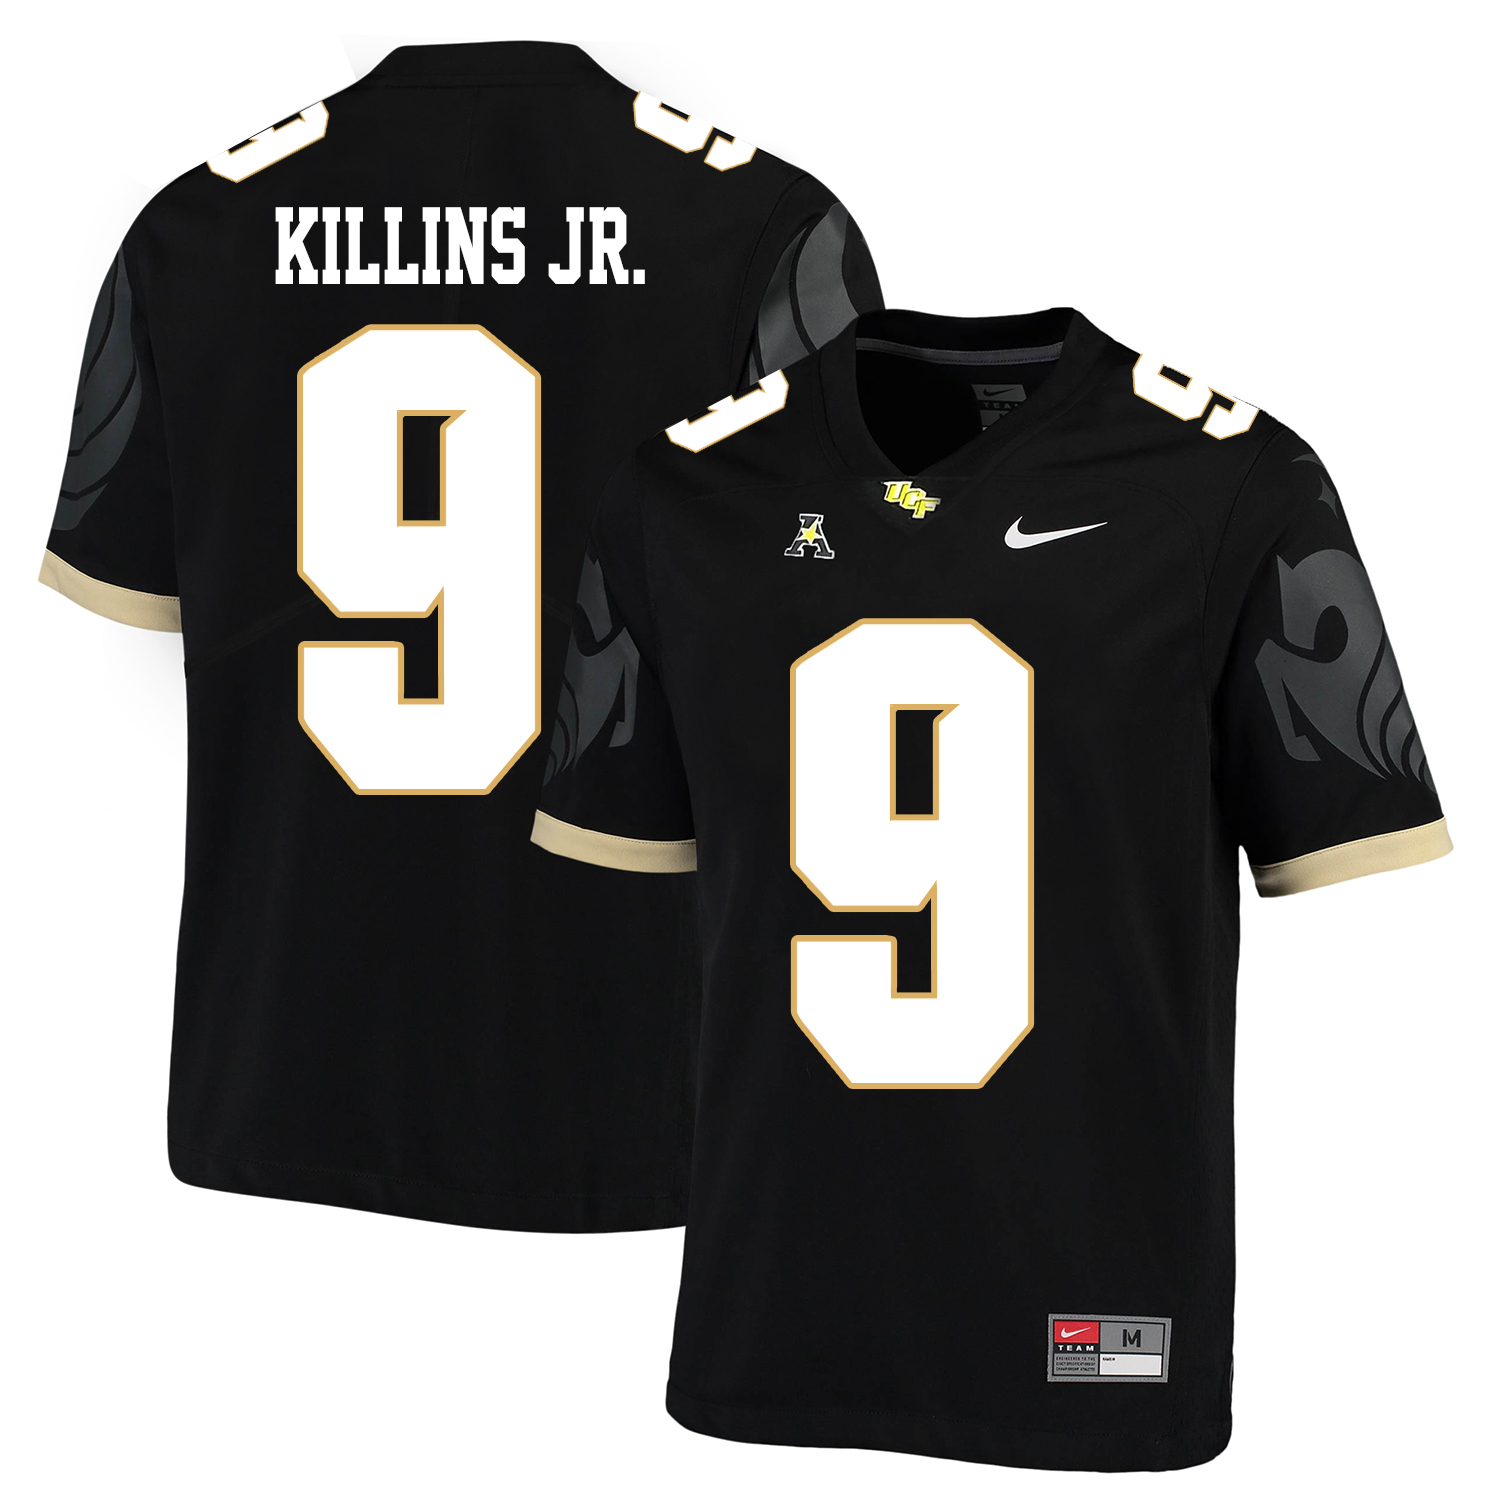 UCF Knights 9 Adrian Killins Jr. Black College Football Jersey